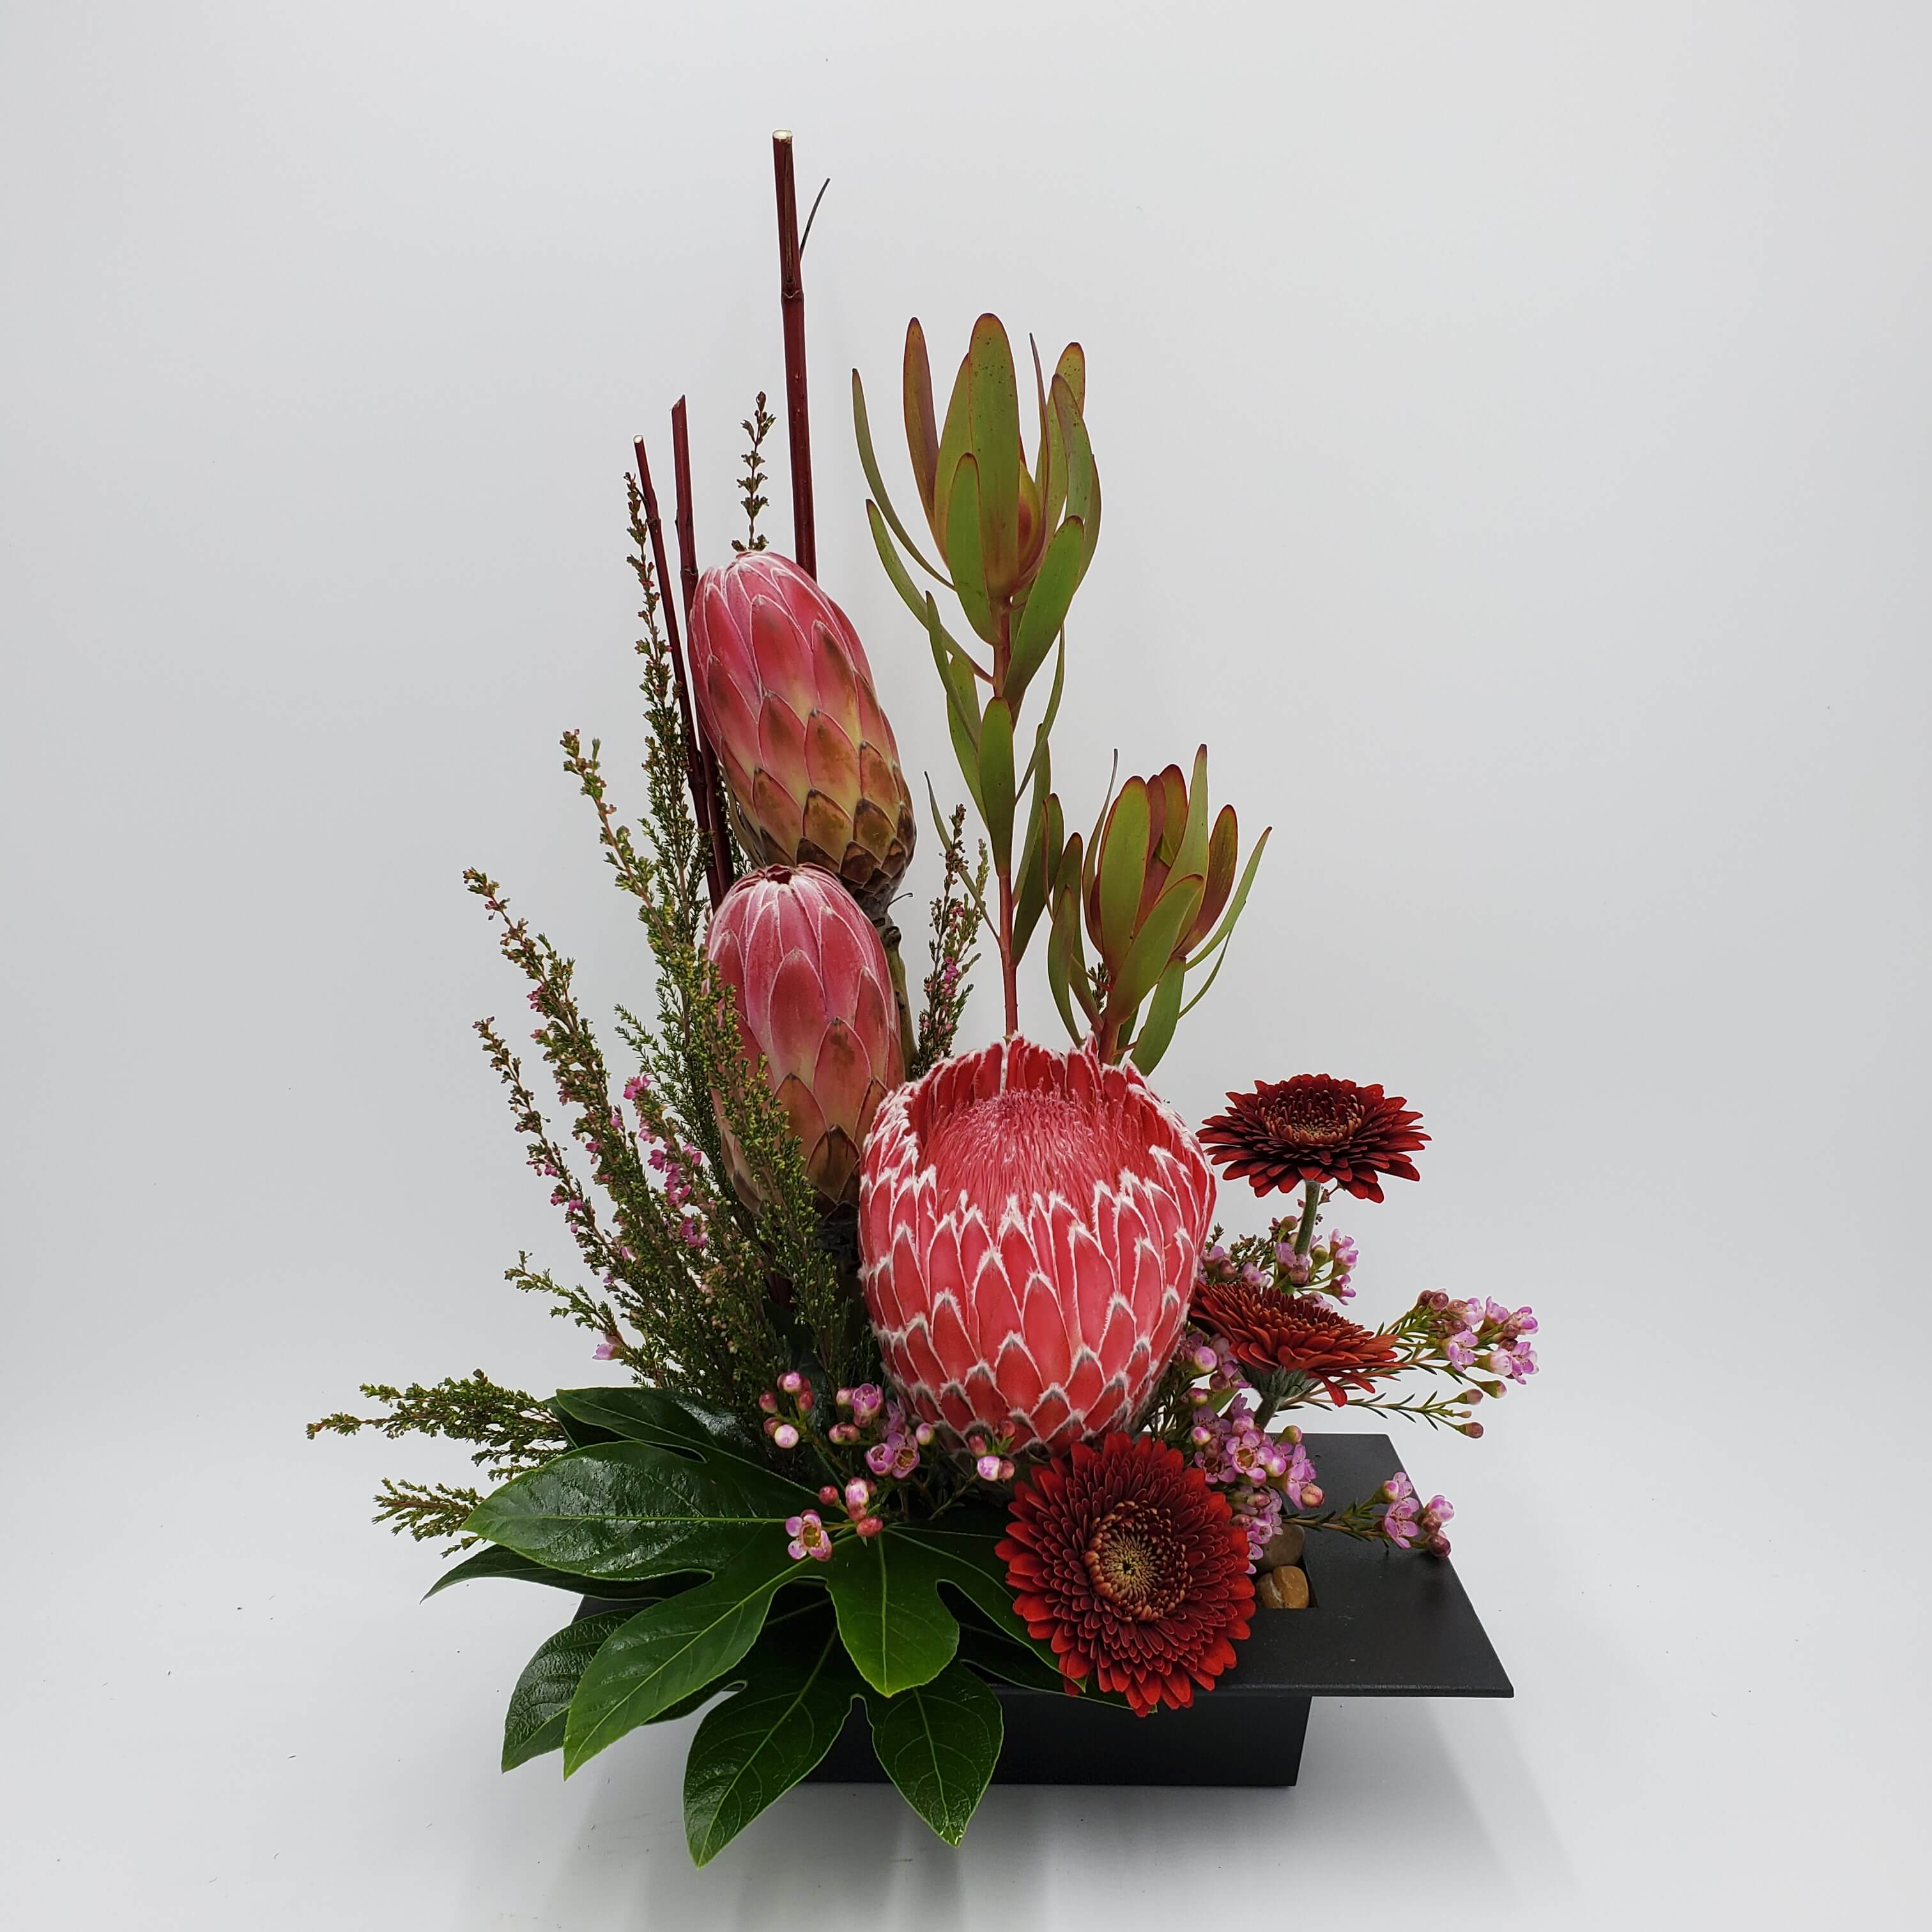 Highstyle floral design with Protea